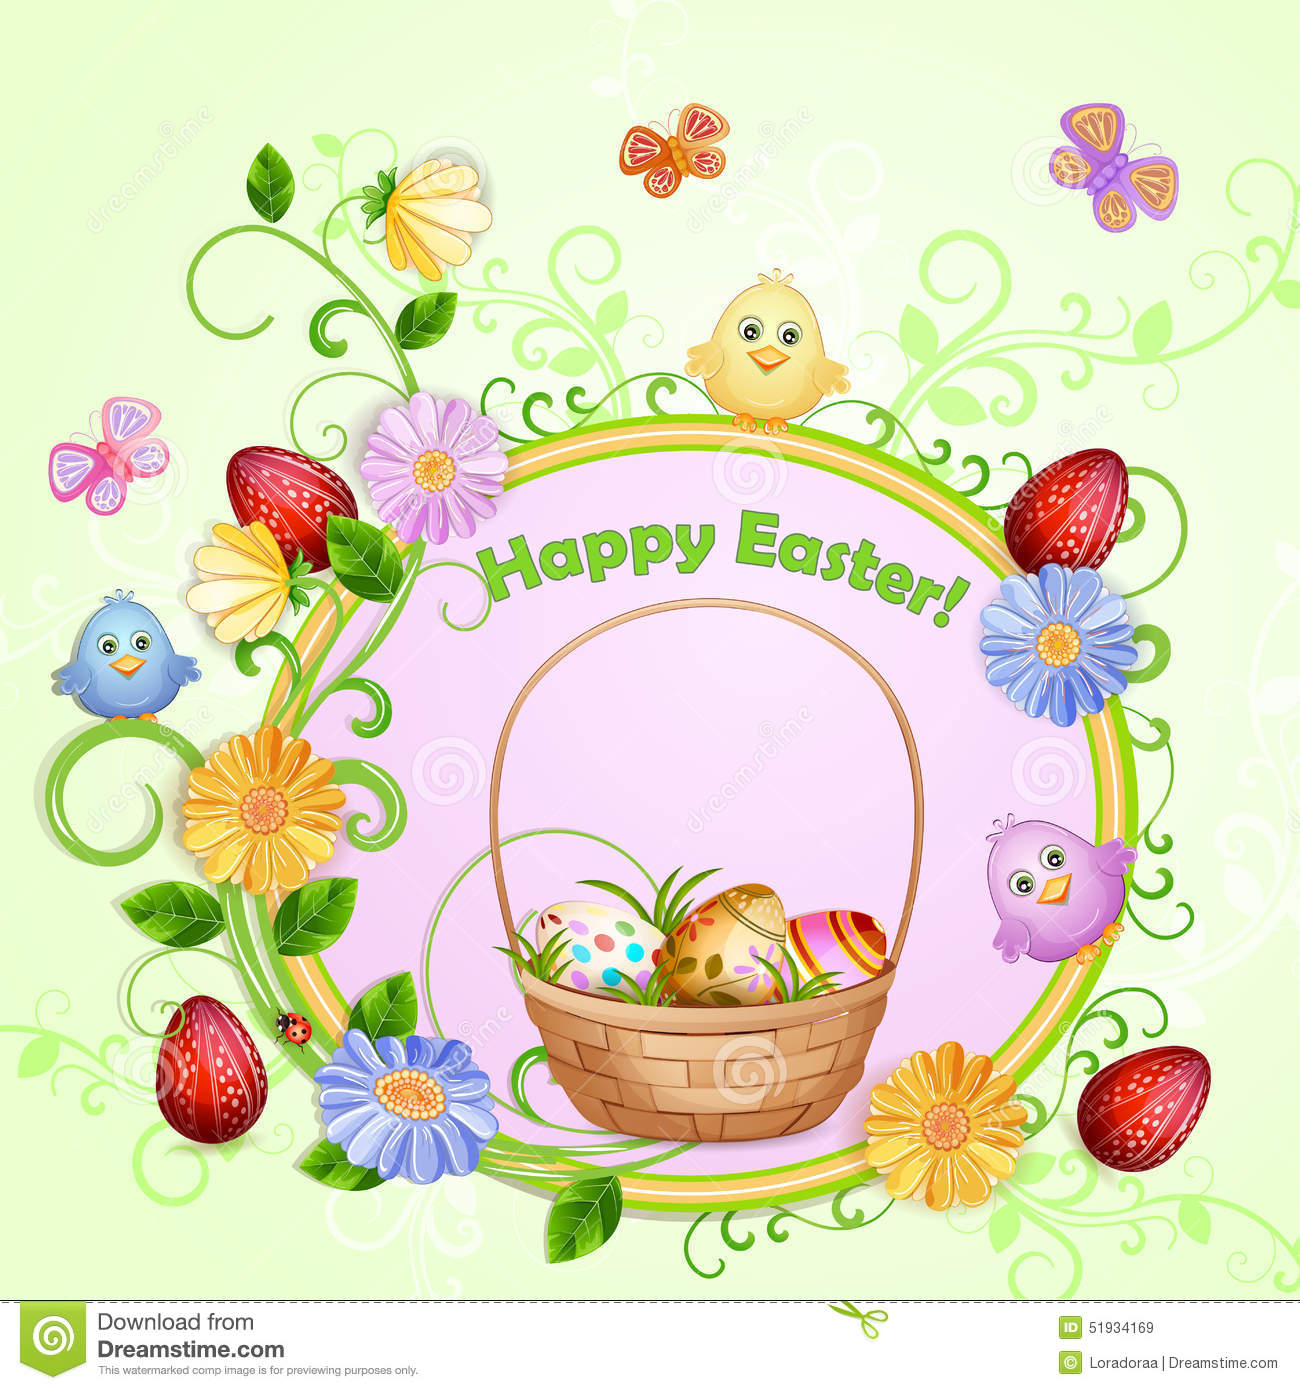 Easter illustration with eggs.